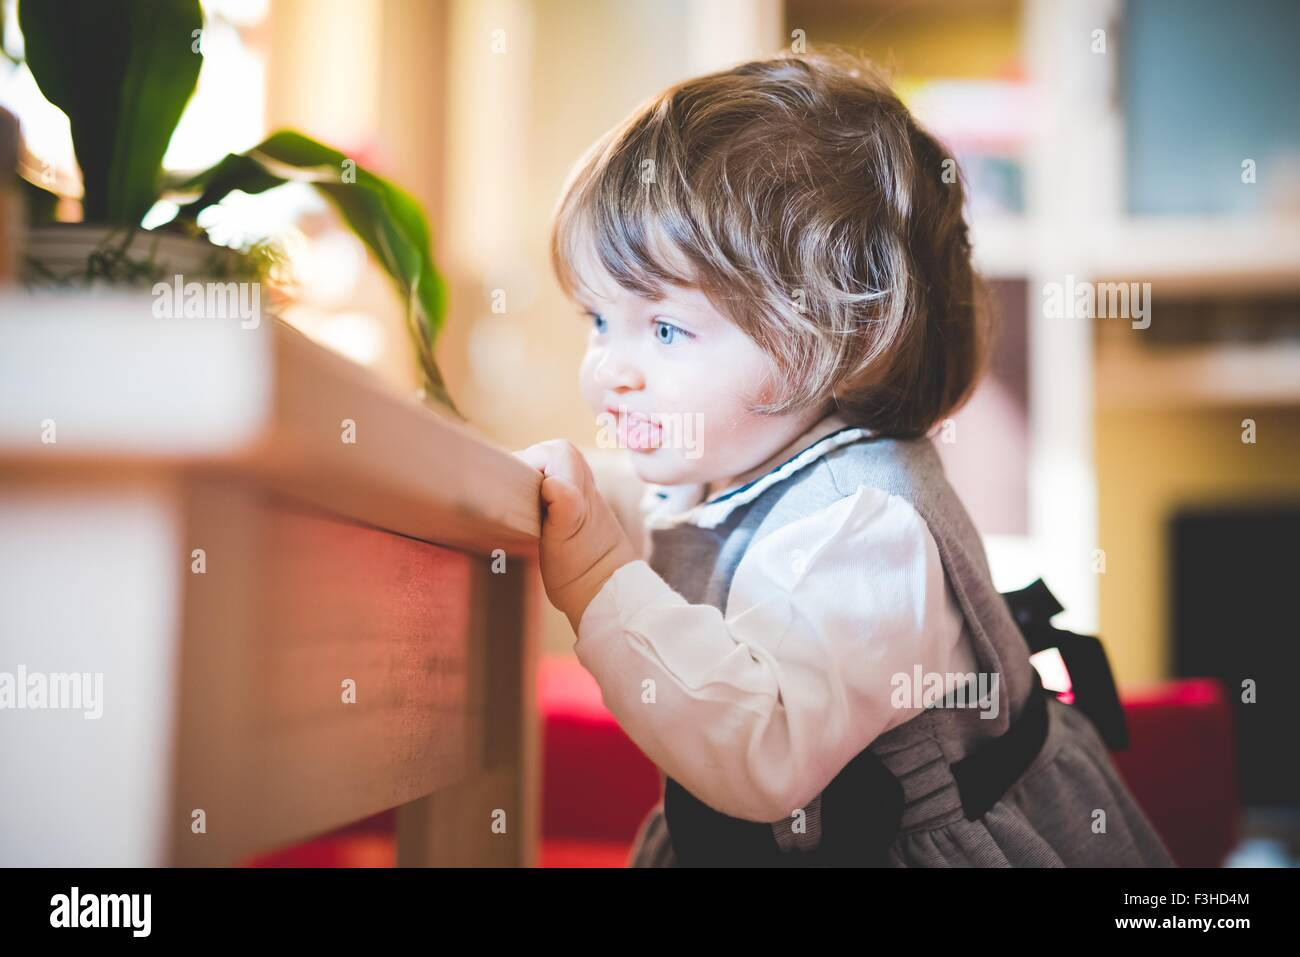 Female toddler holding coffee table whilst toddling - Stock Image